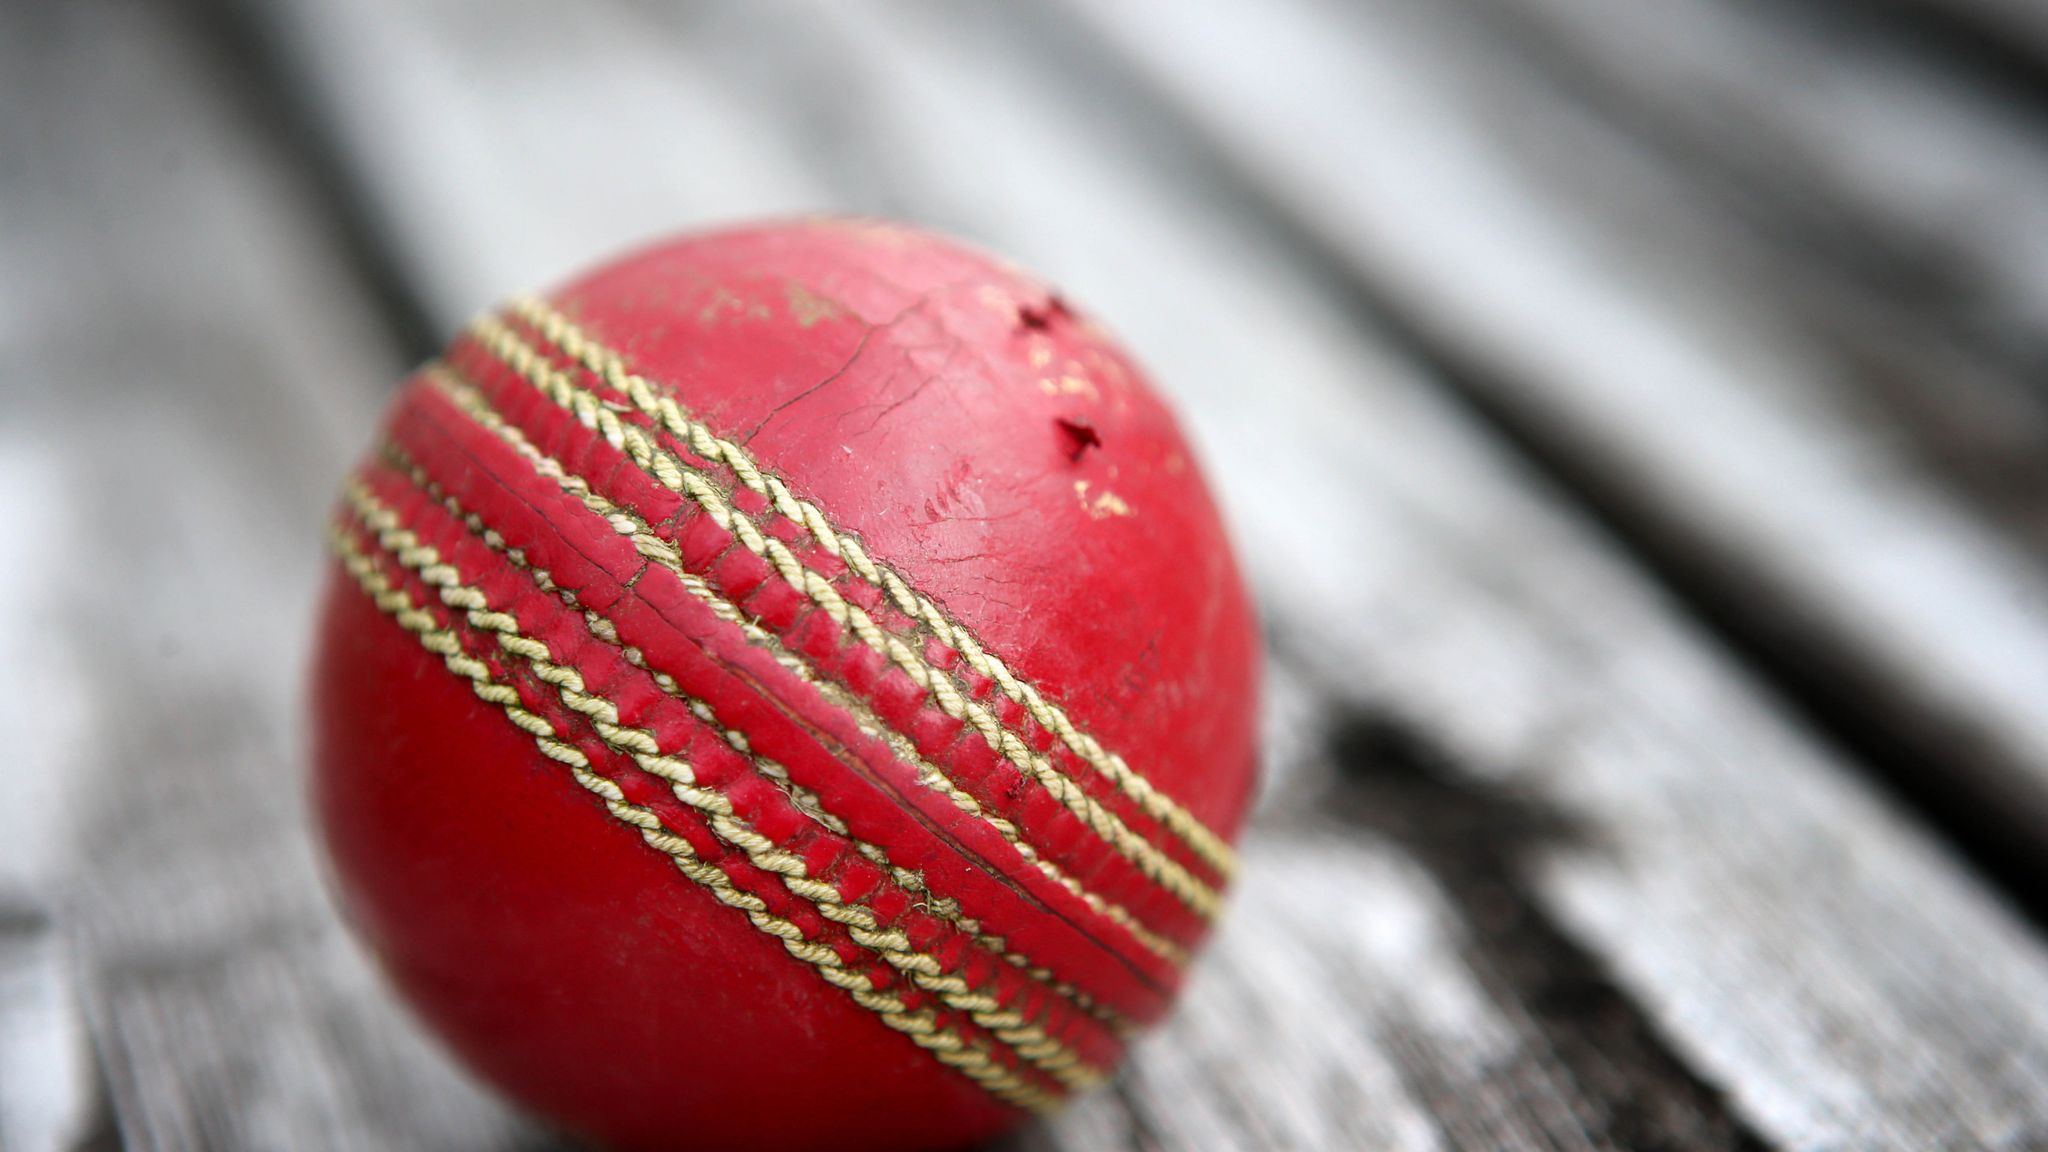 Icc Increases Sanctions For Ball Tampering Cricket News